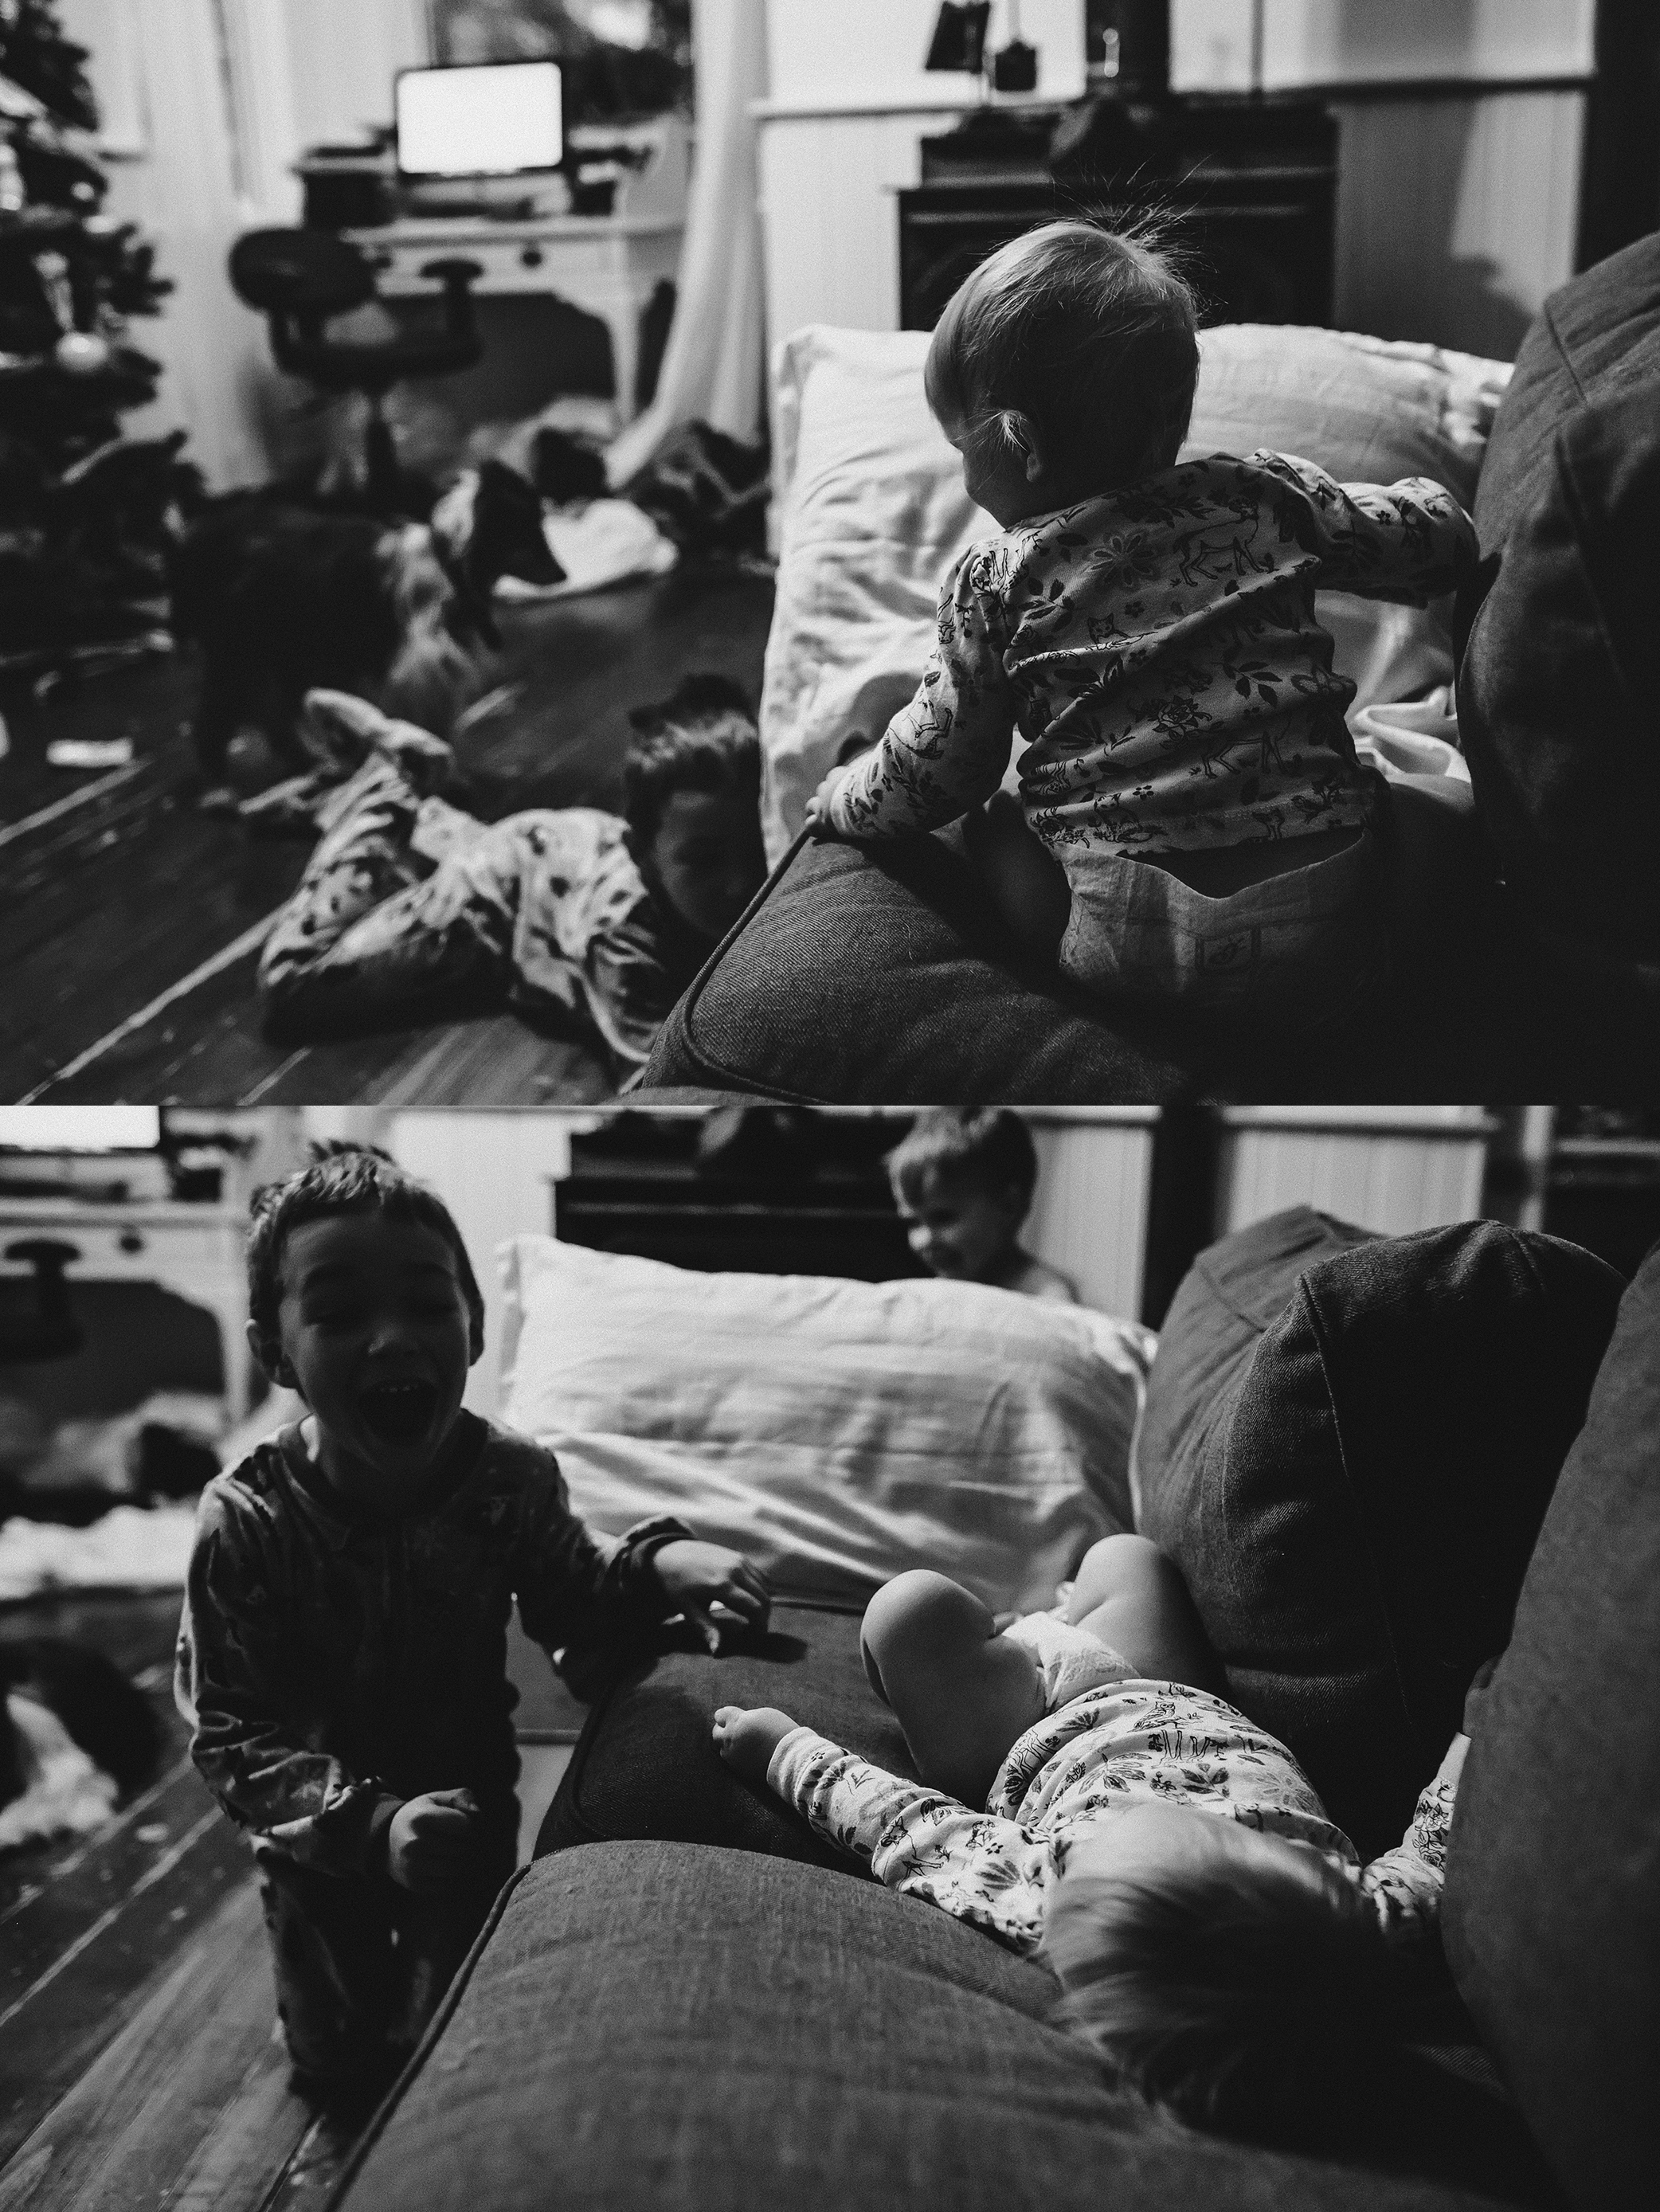 2. 365 -My littlest loves it when her big brother scares her. He sneaks around the couch, then pops up and screams his head off. She laughs hysterically. I felt this moment was best told with two photos.